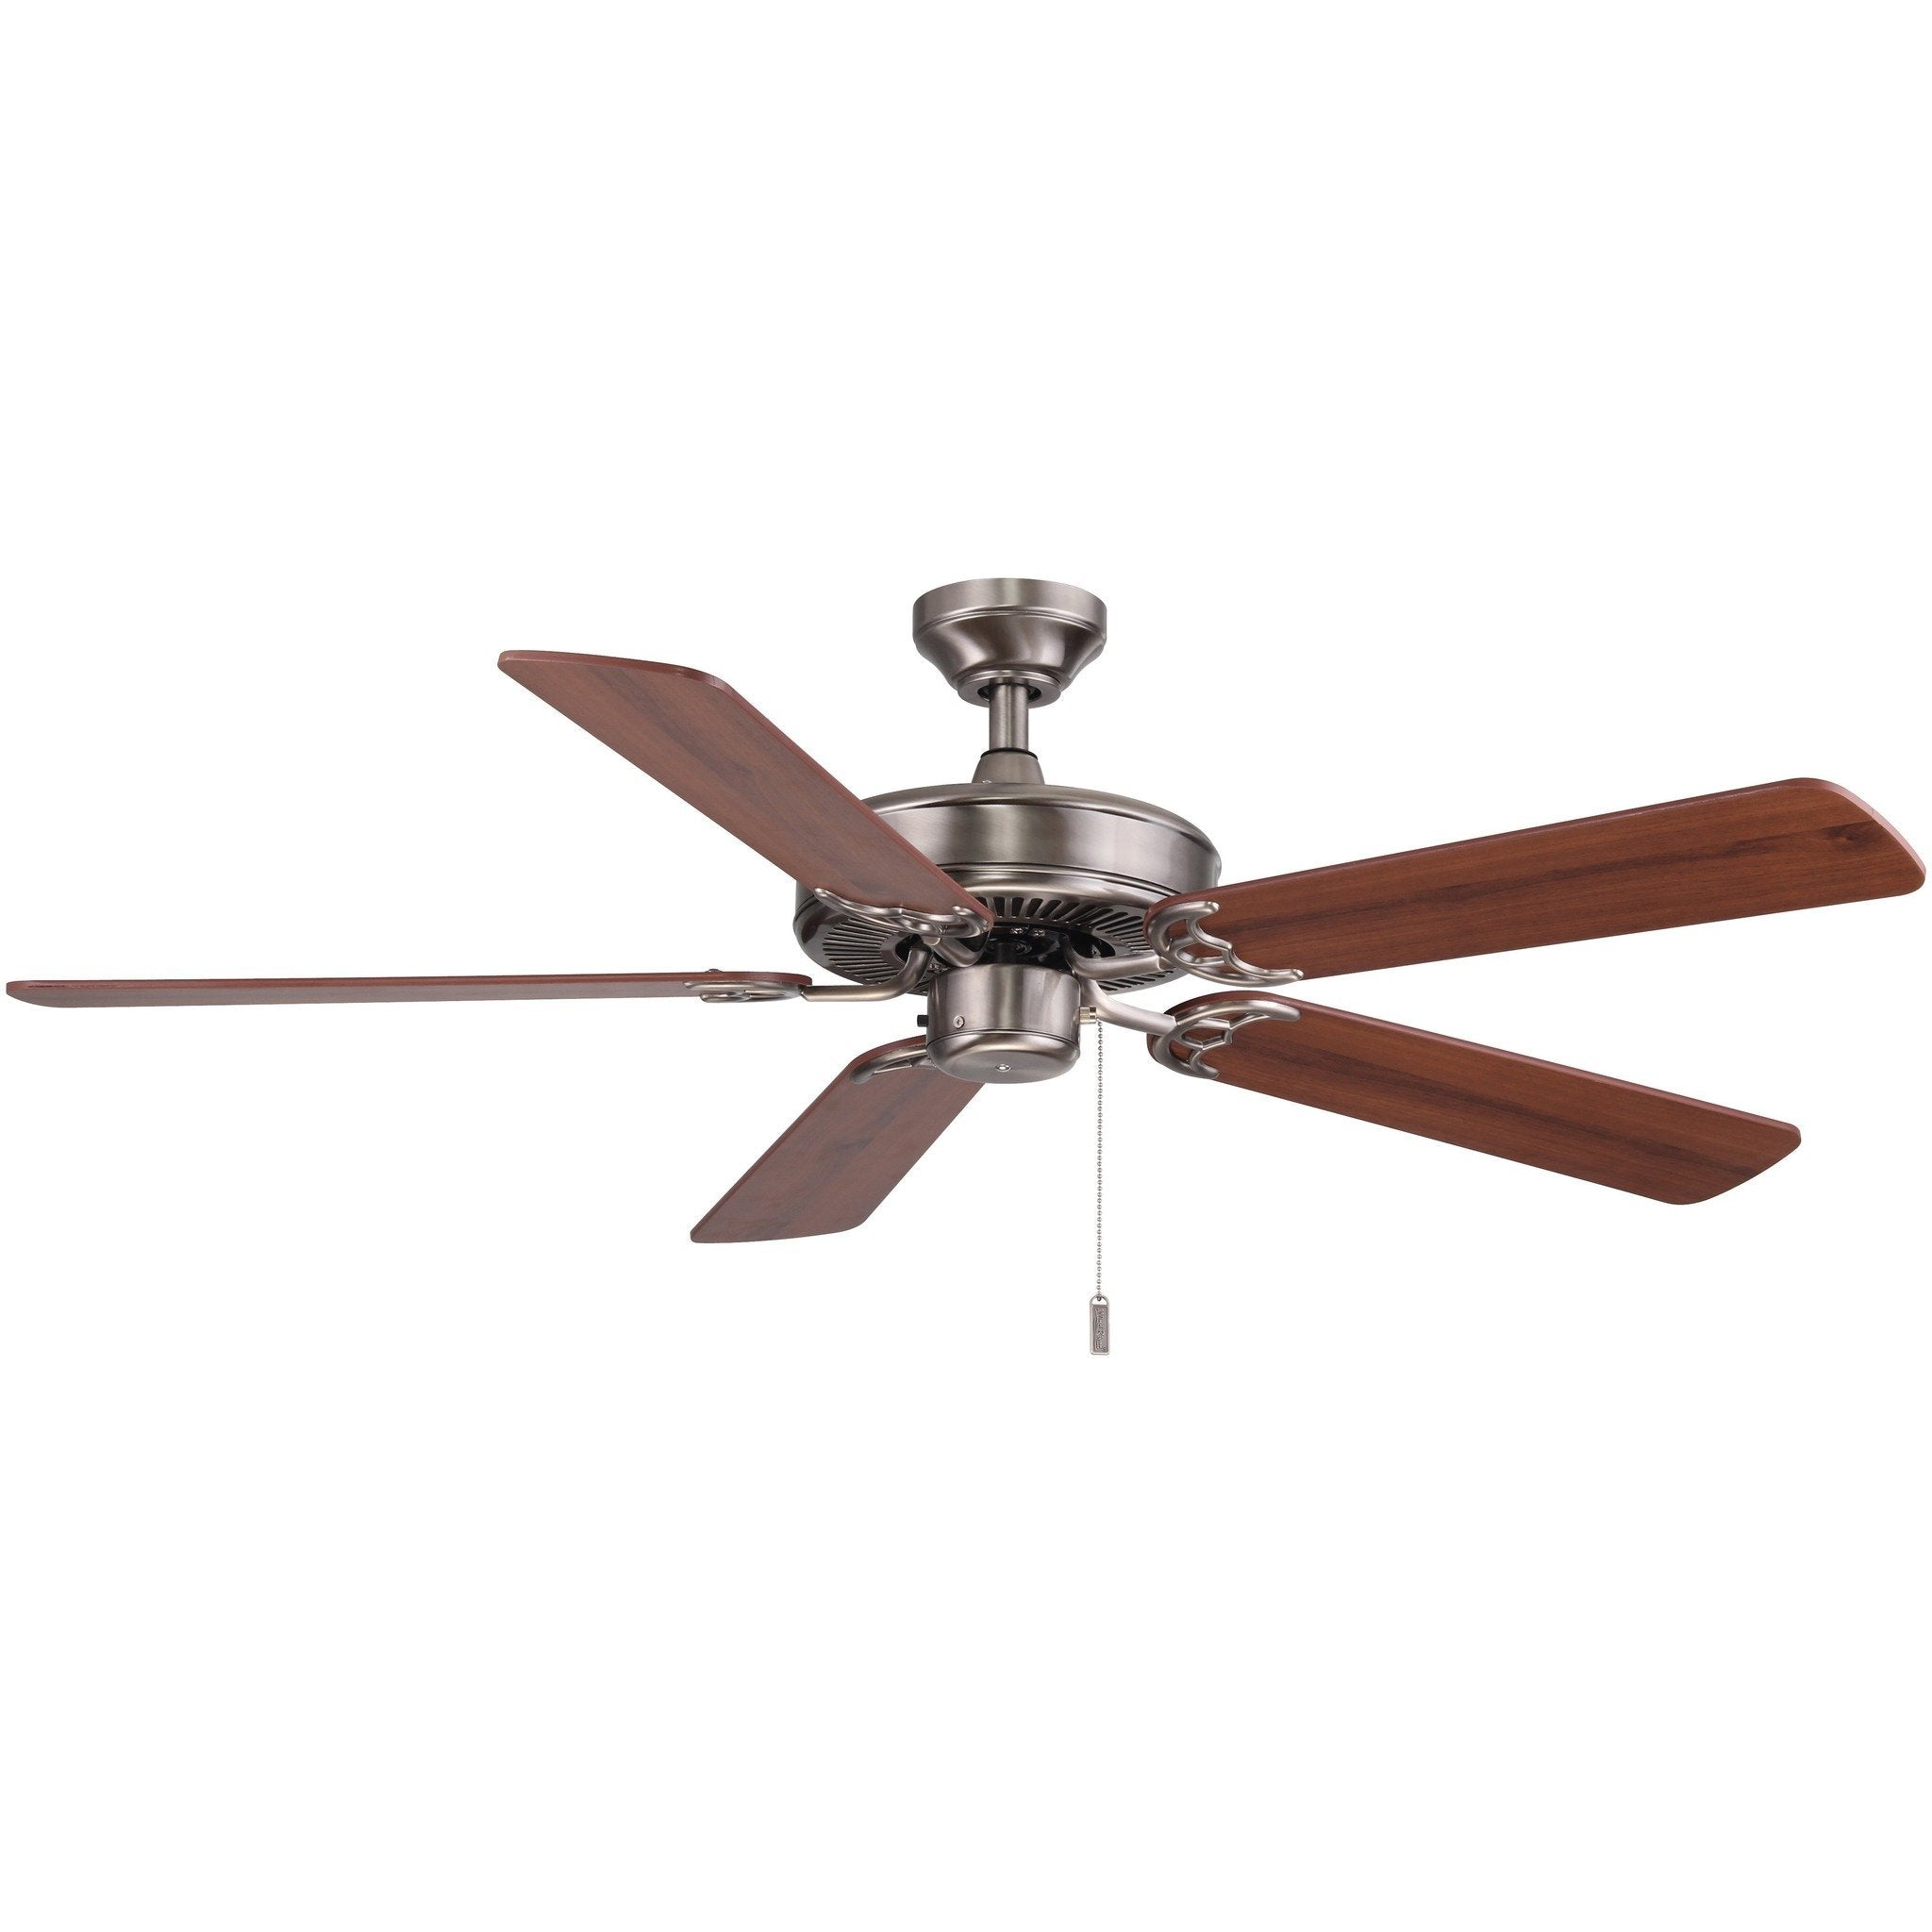 "Wind River Dalton Nickel 52"" Ceiling Fan"